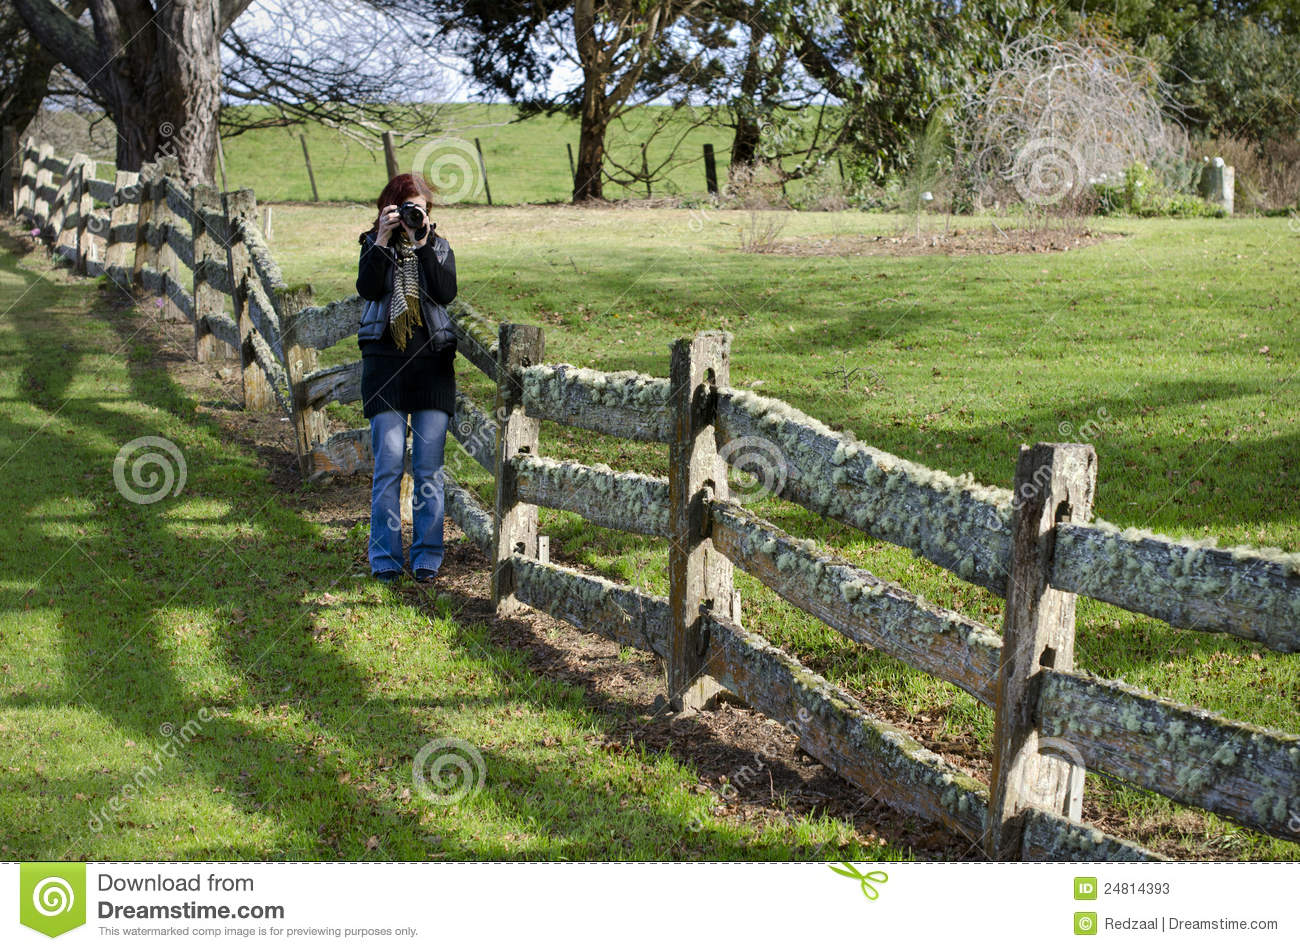 Female Photographer At Old Post And Rail Fence Stock Image